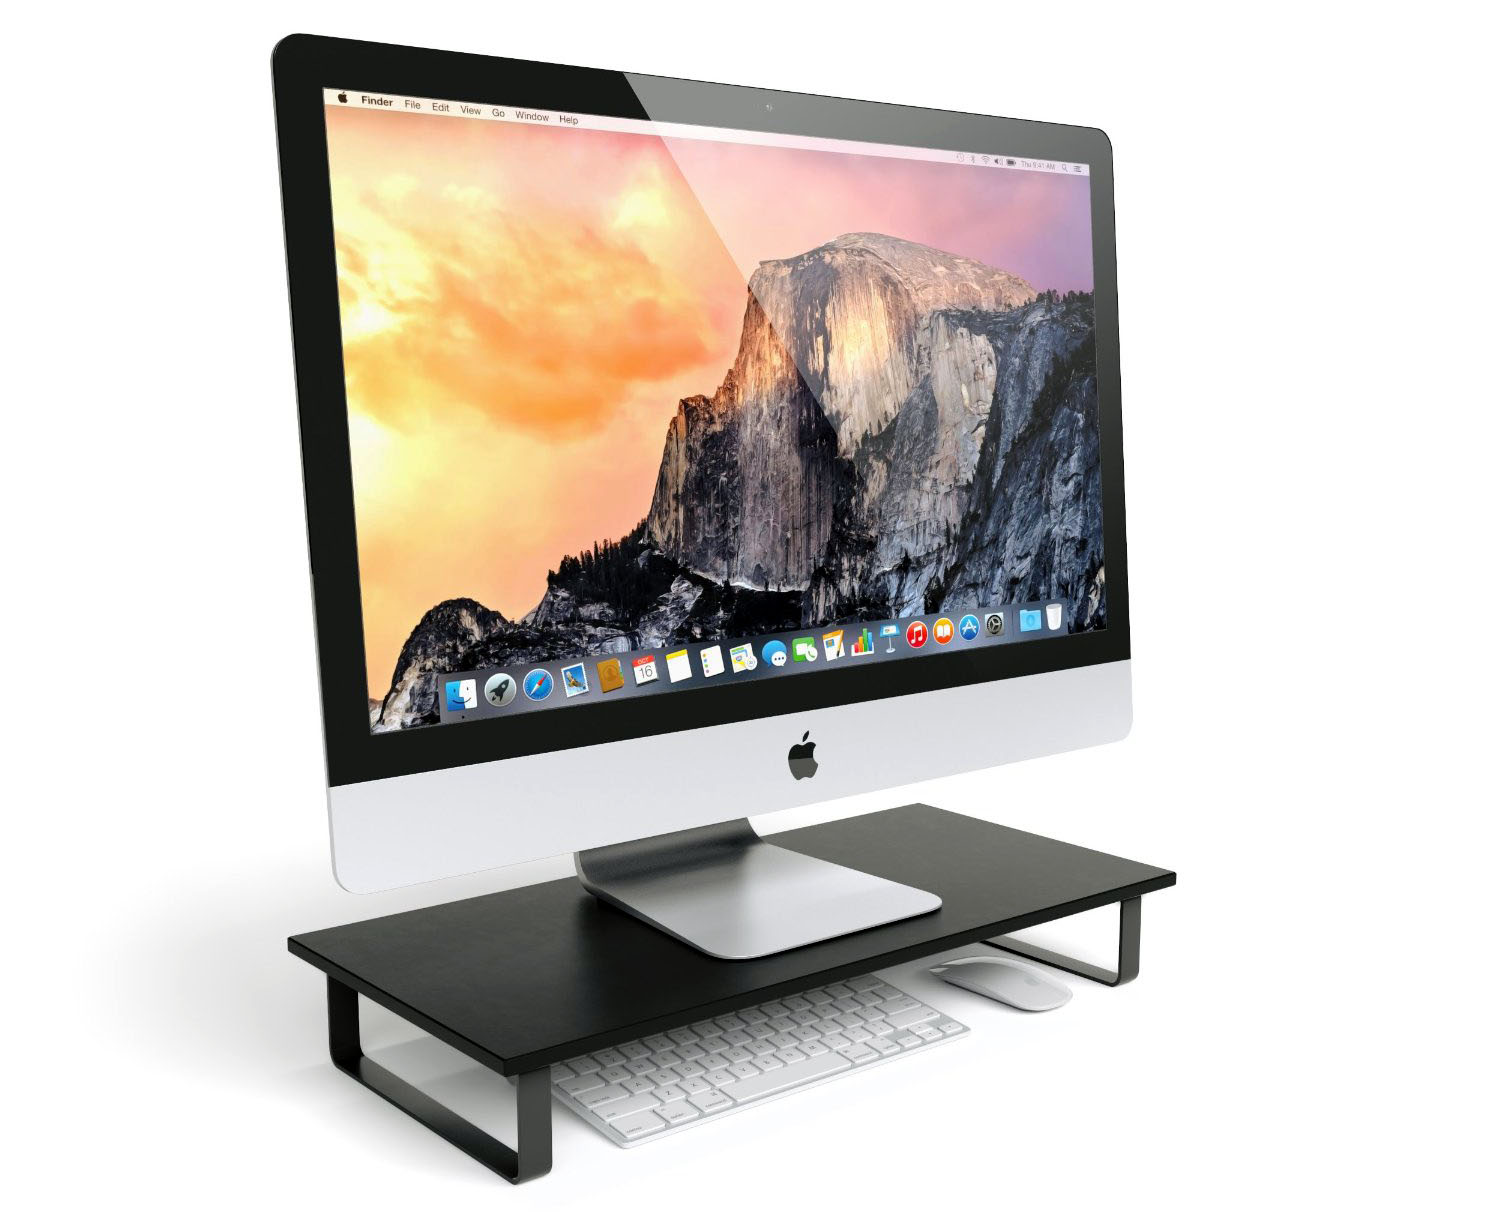 Review: Satechi Classic Monitor Stand